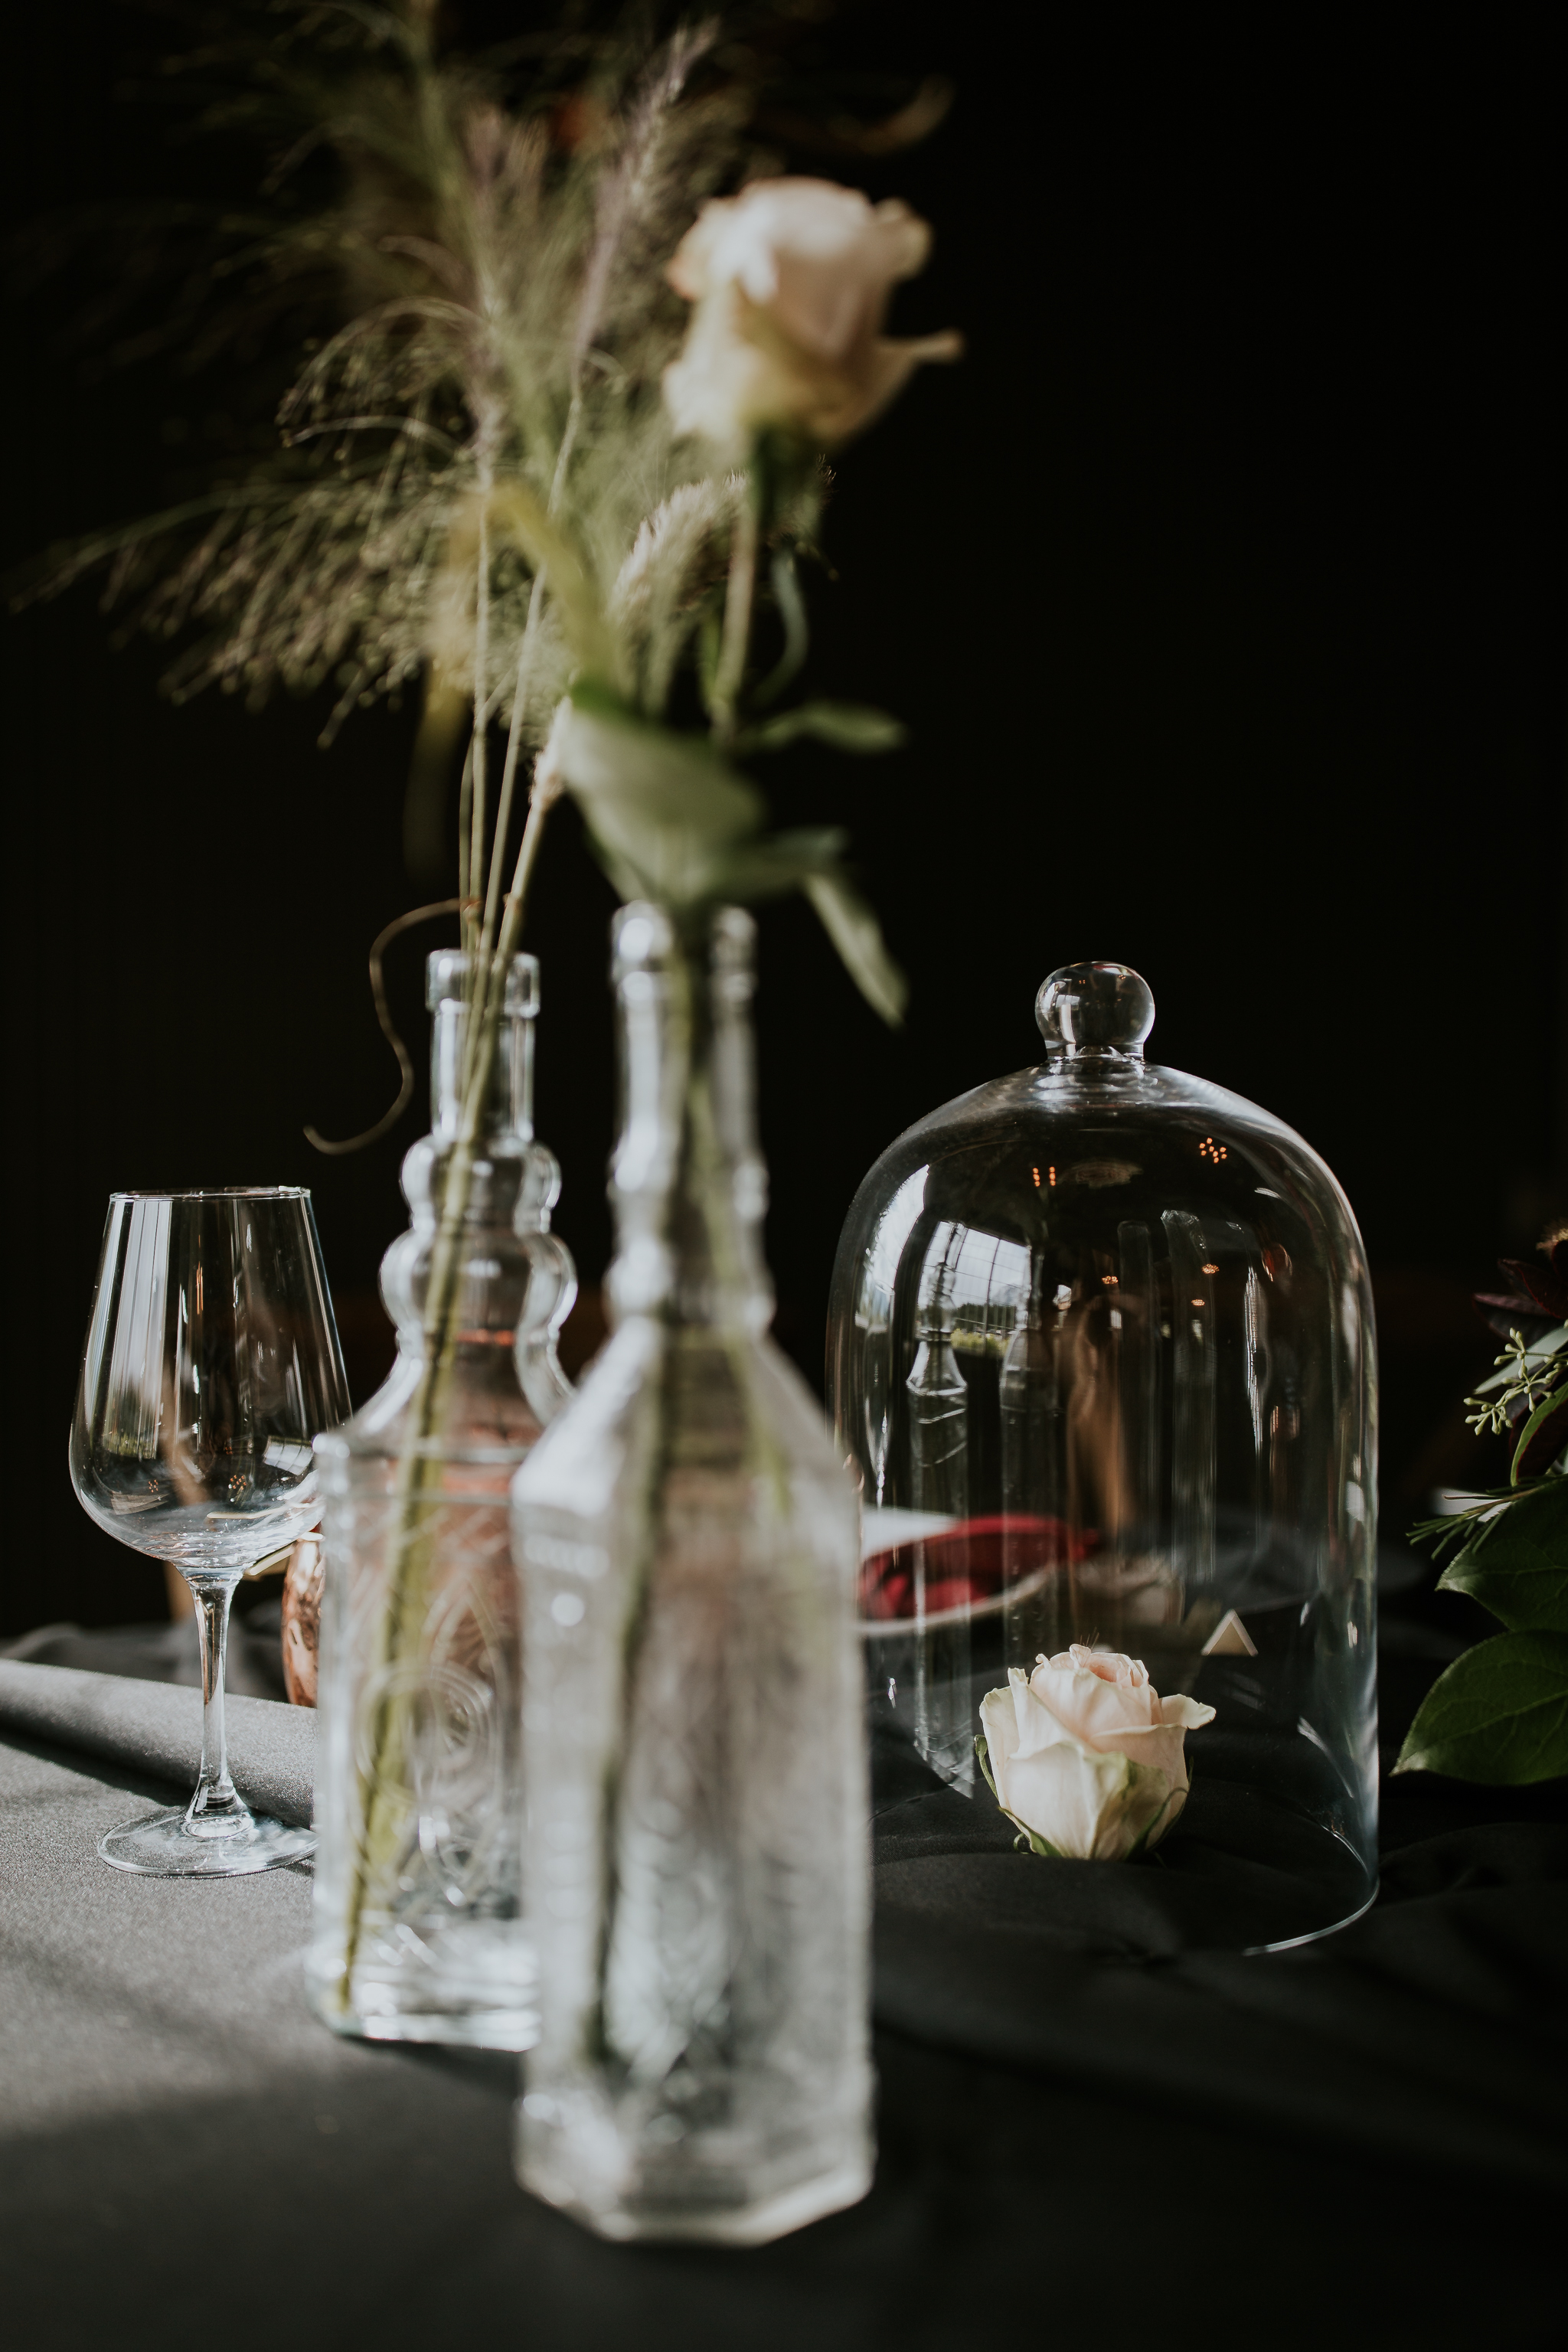 Single rose in tumbler on table like Beauty and the Beast inspired wedding photo